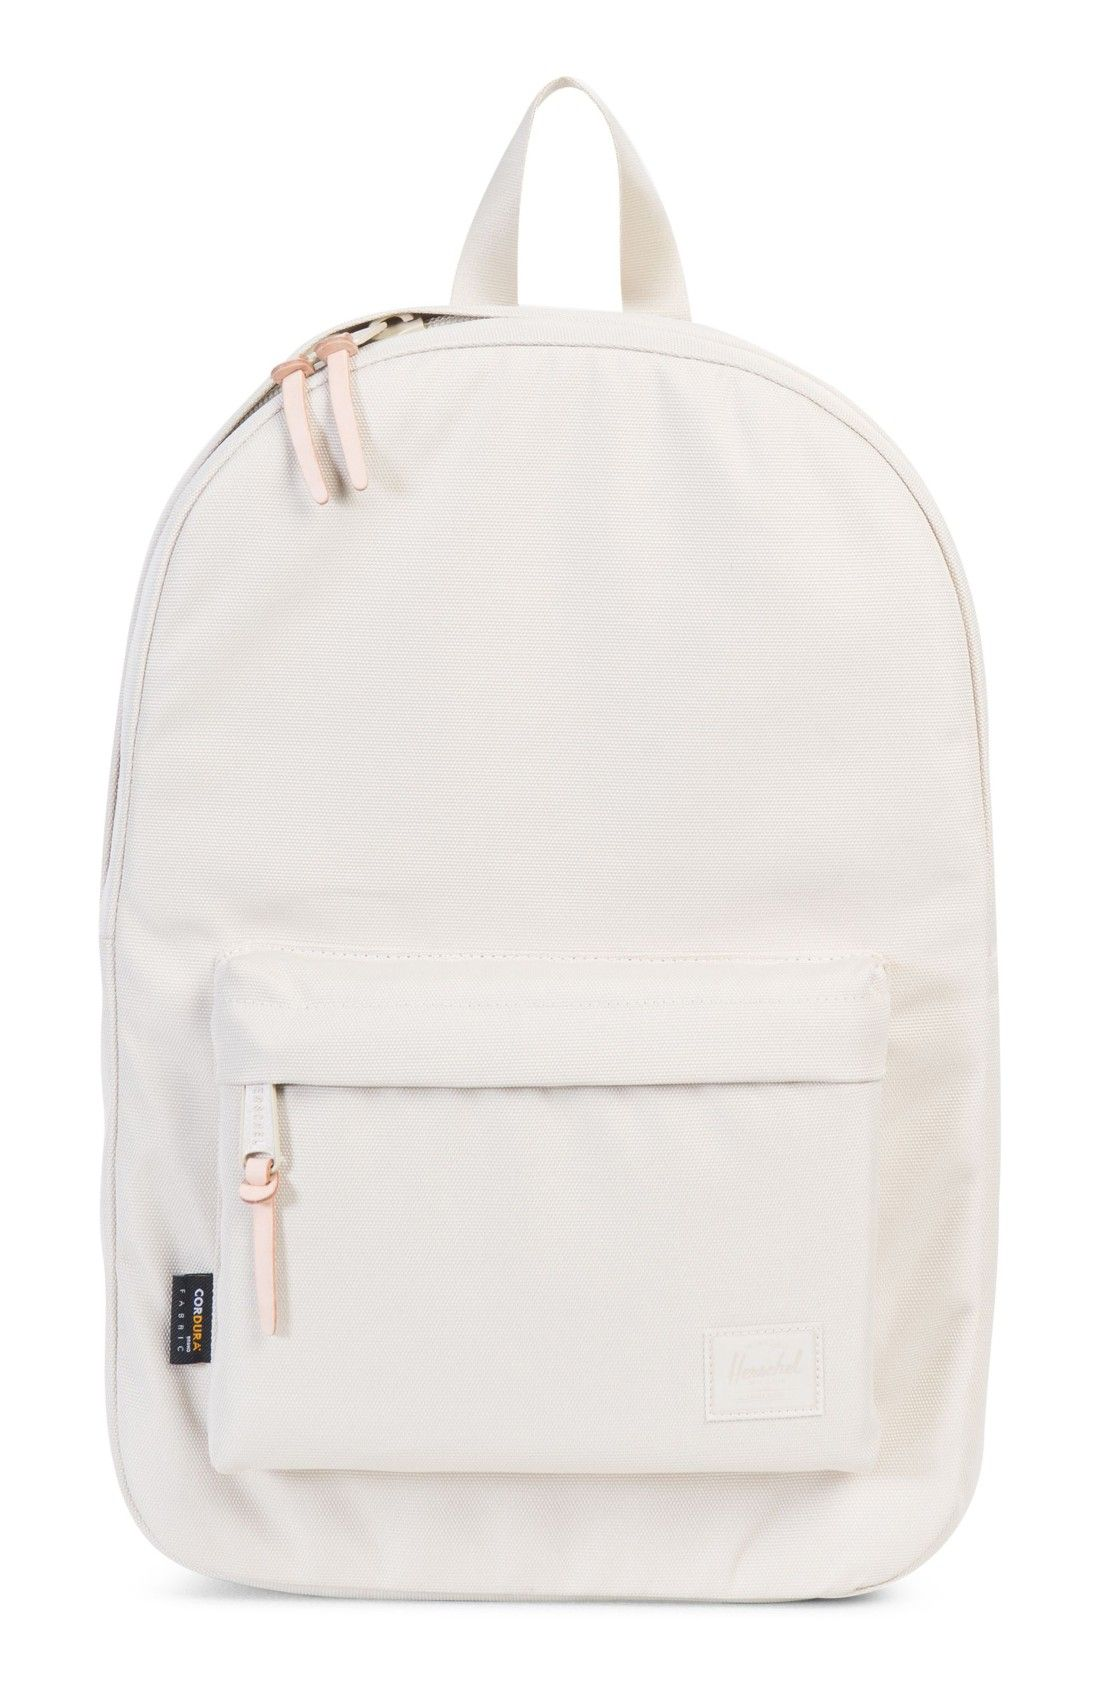 d72c6486ca36 Durable white Backpack with leather trim for a vintage look via Herschel  Supply Co. Love their products! Great for a tech backpack  affiliate link